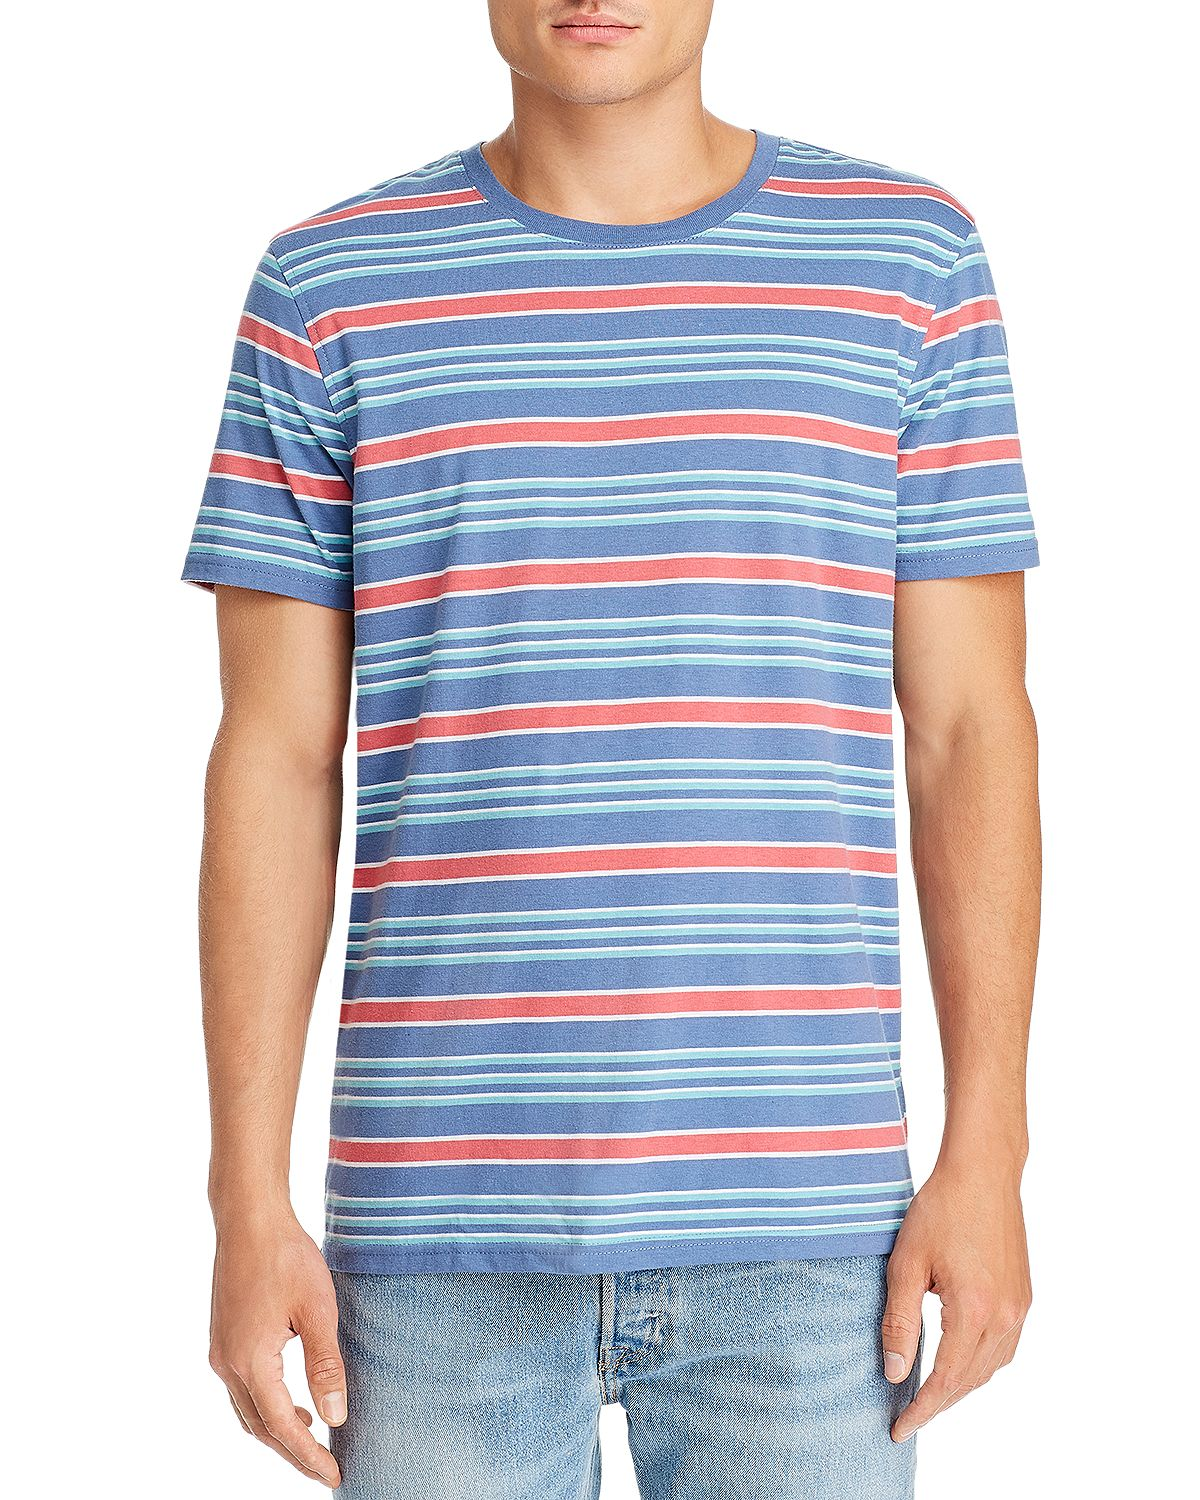 Pacific & Park Striped Tee